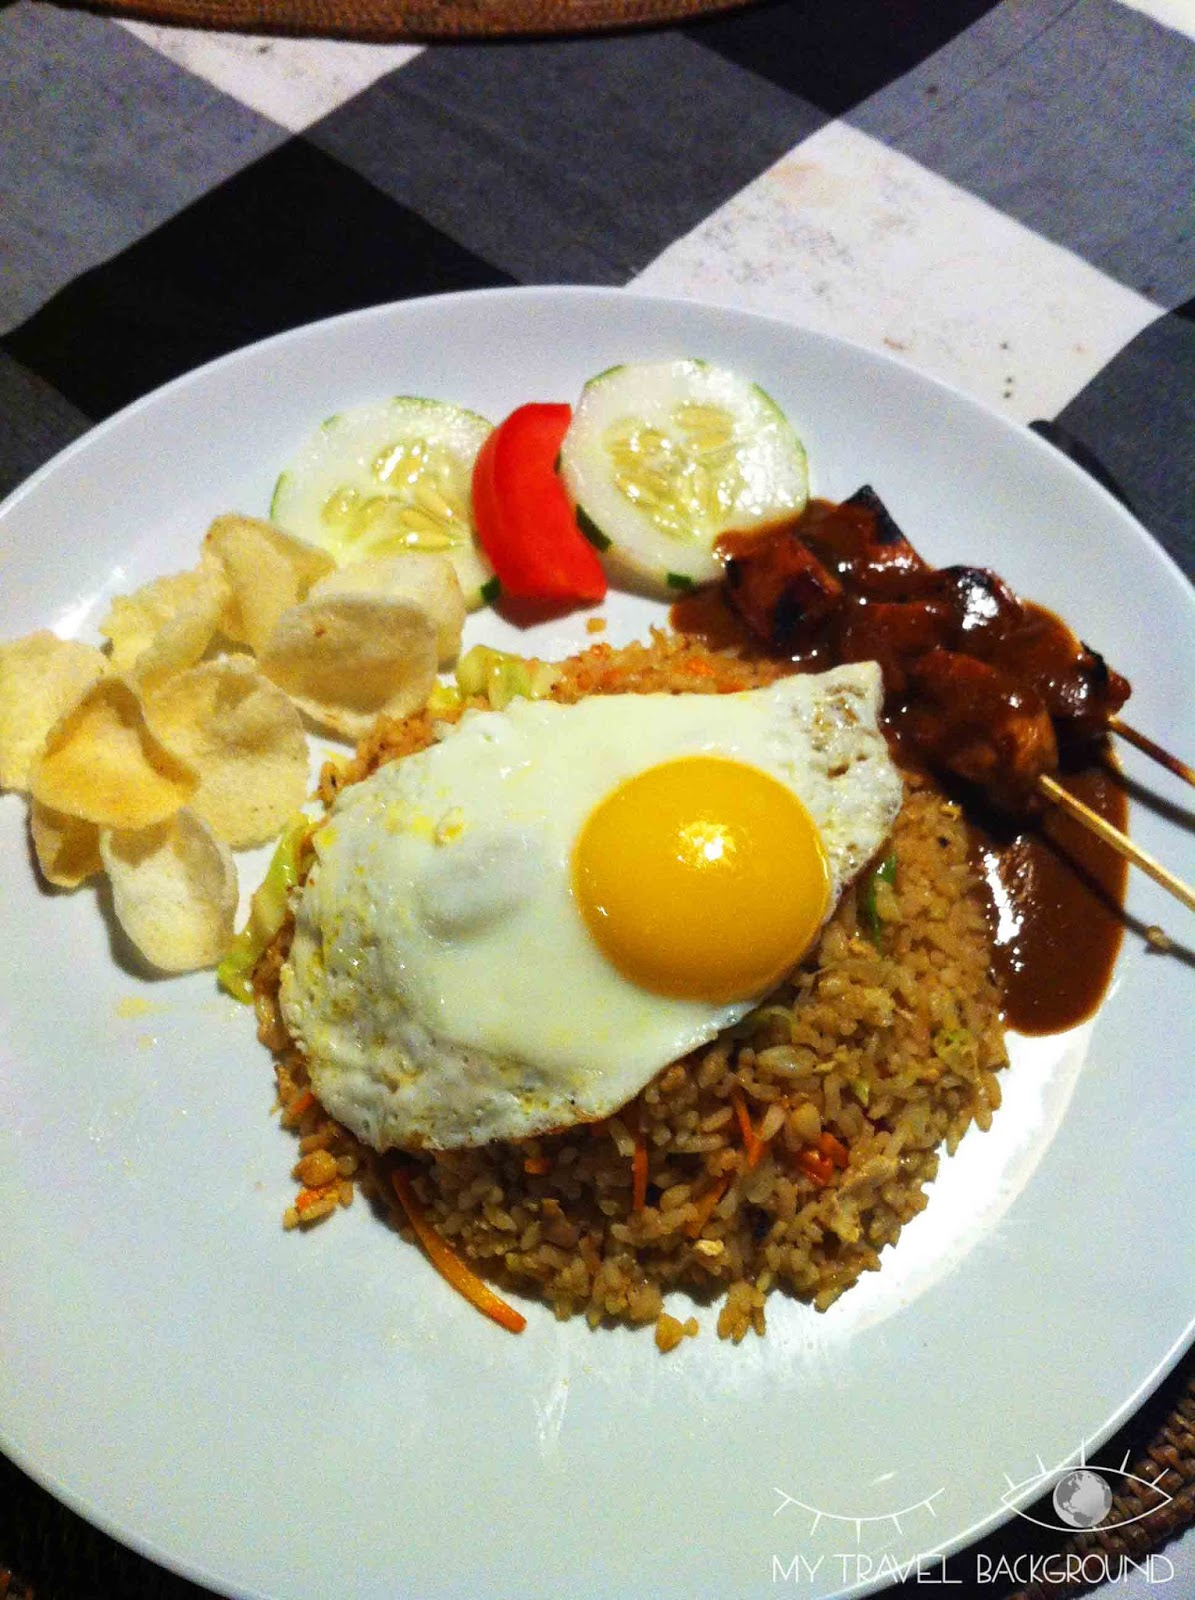 My Travel Background : 14 plats typiques dégustés en voyage - Nasi Goreng en Indonésie, Sidemen